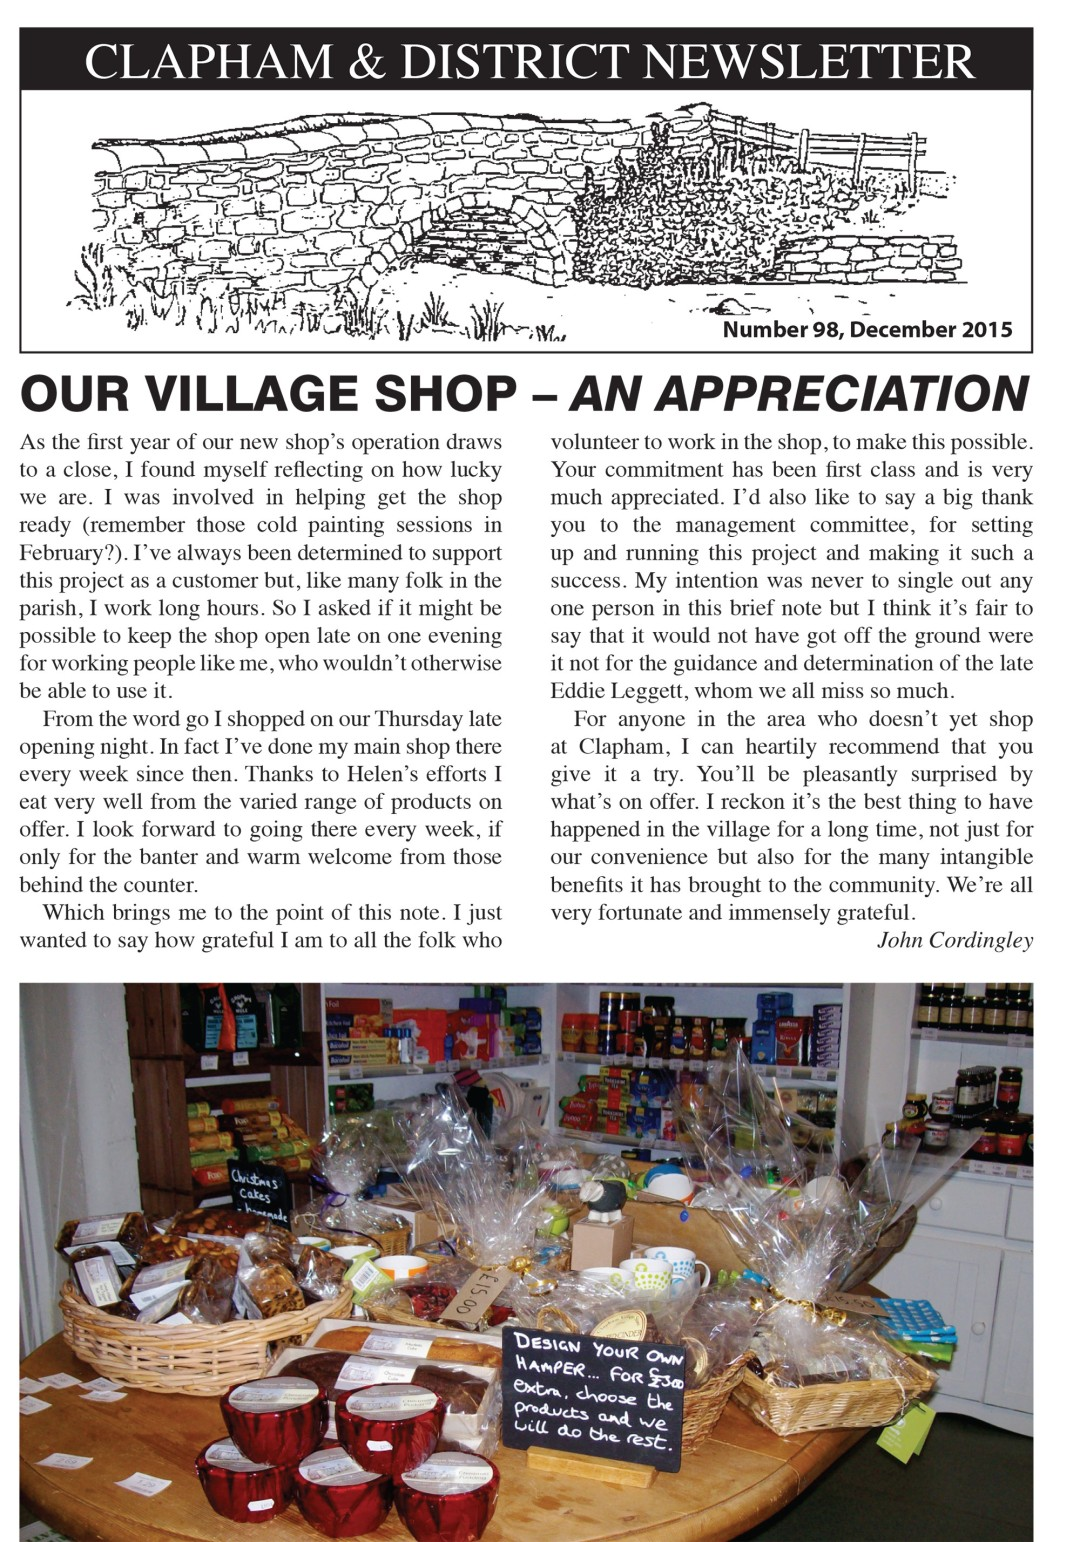 Village shop one year on Newsletter No 98 December 2015